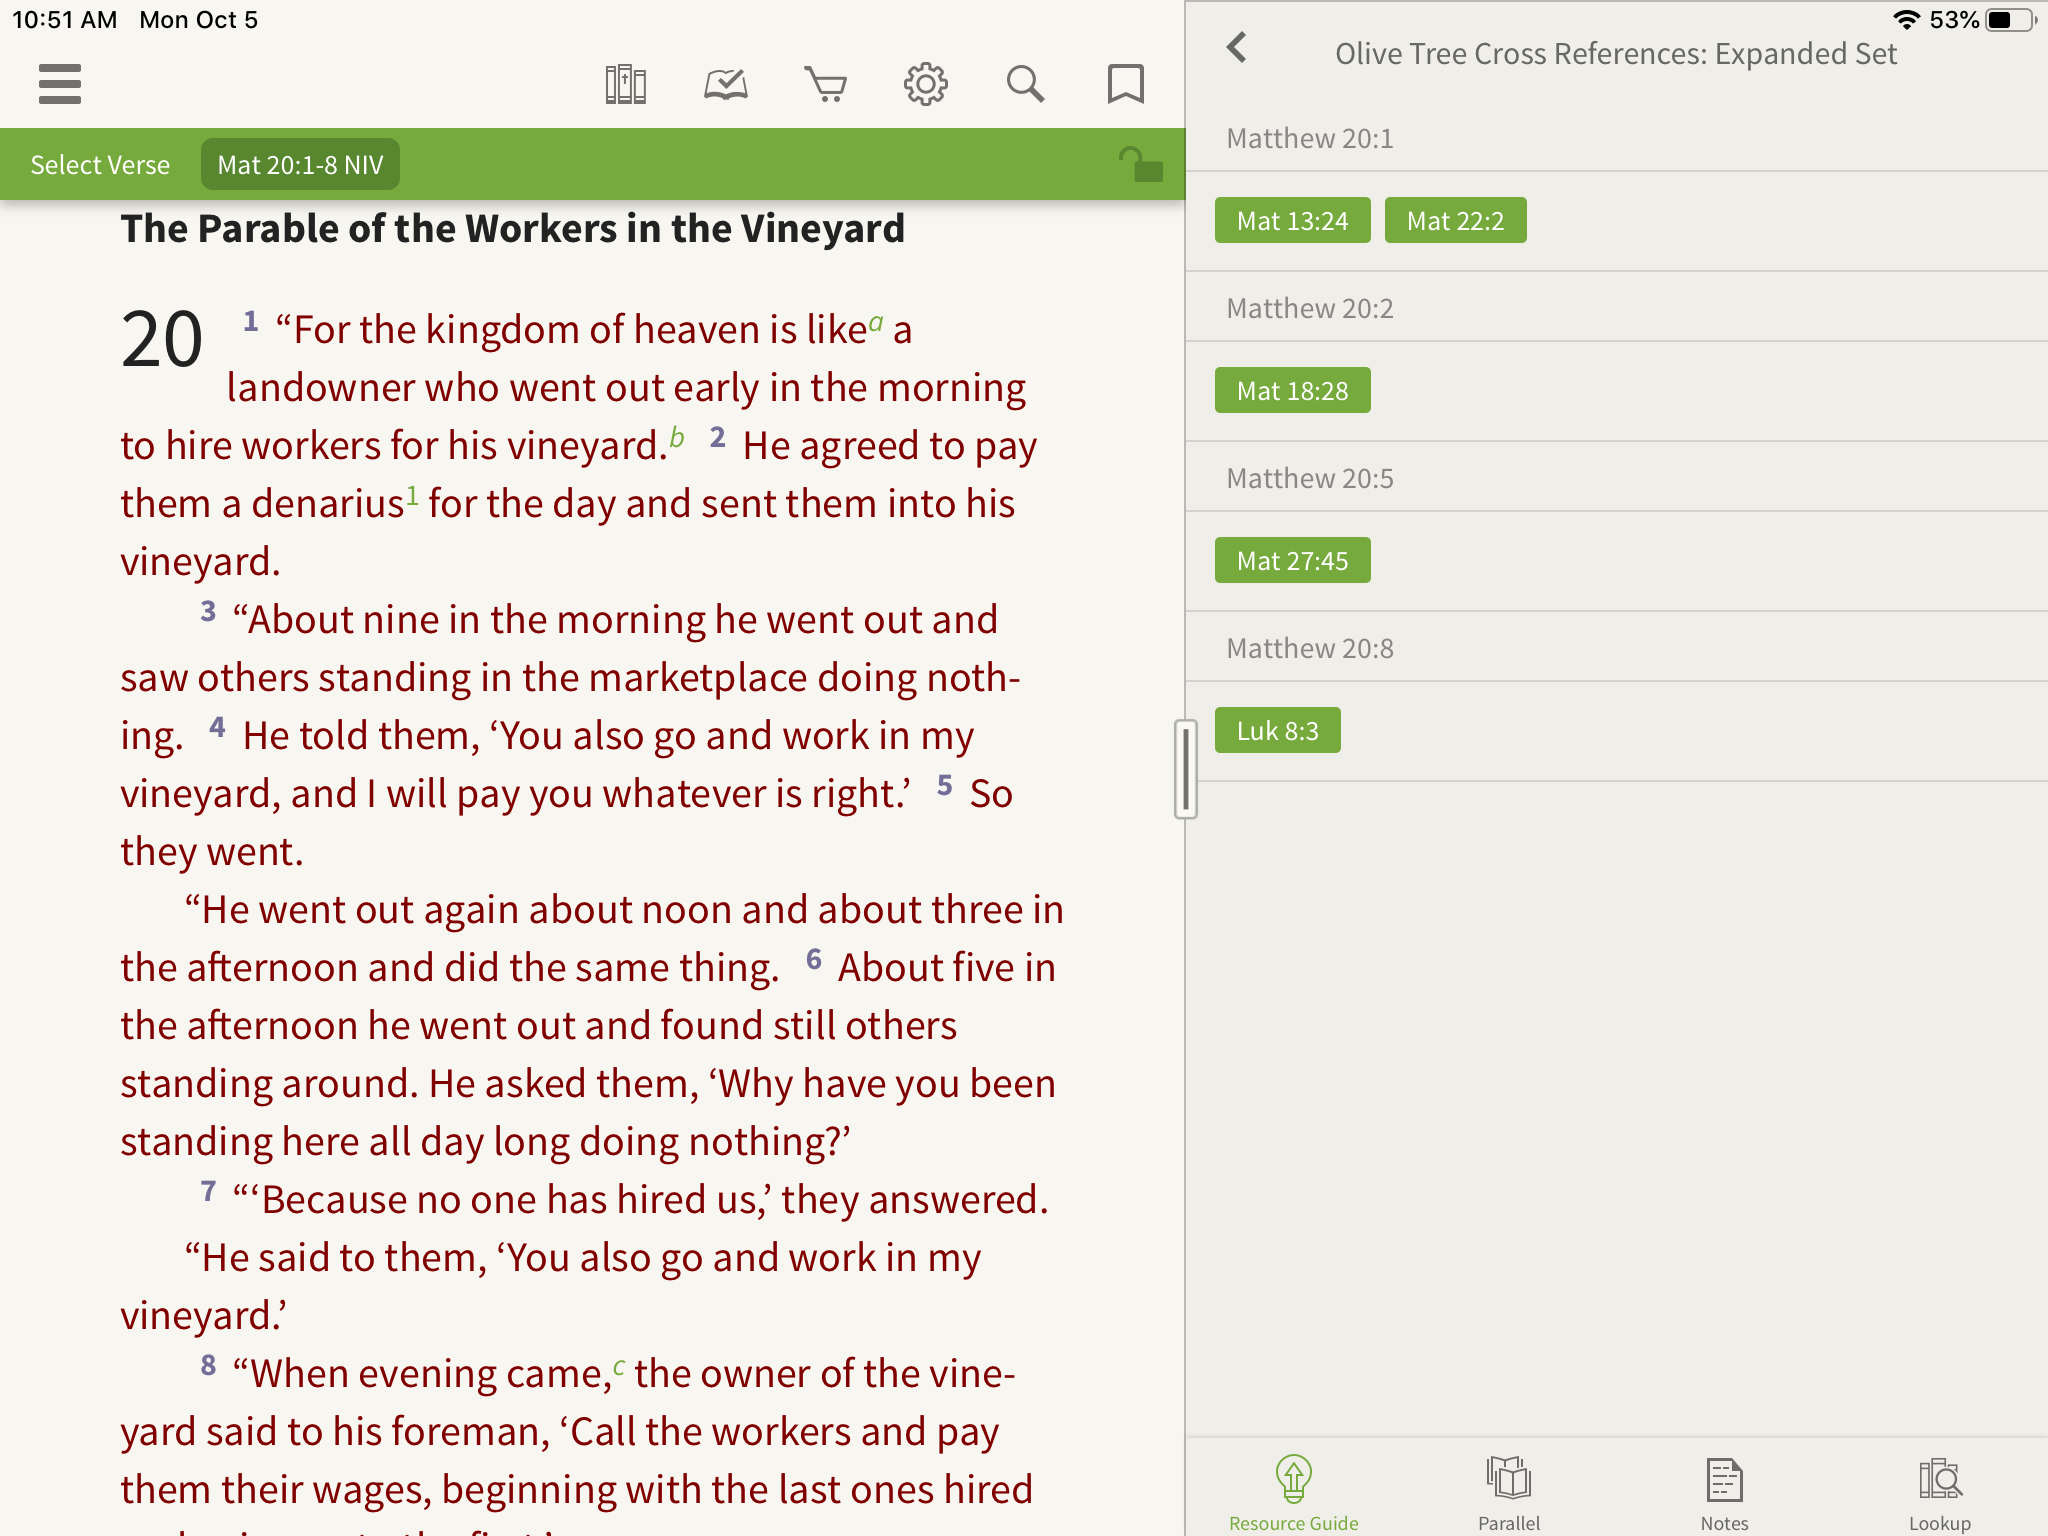 Olive Tree Bible App choose a passage to cross-reference